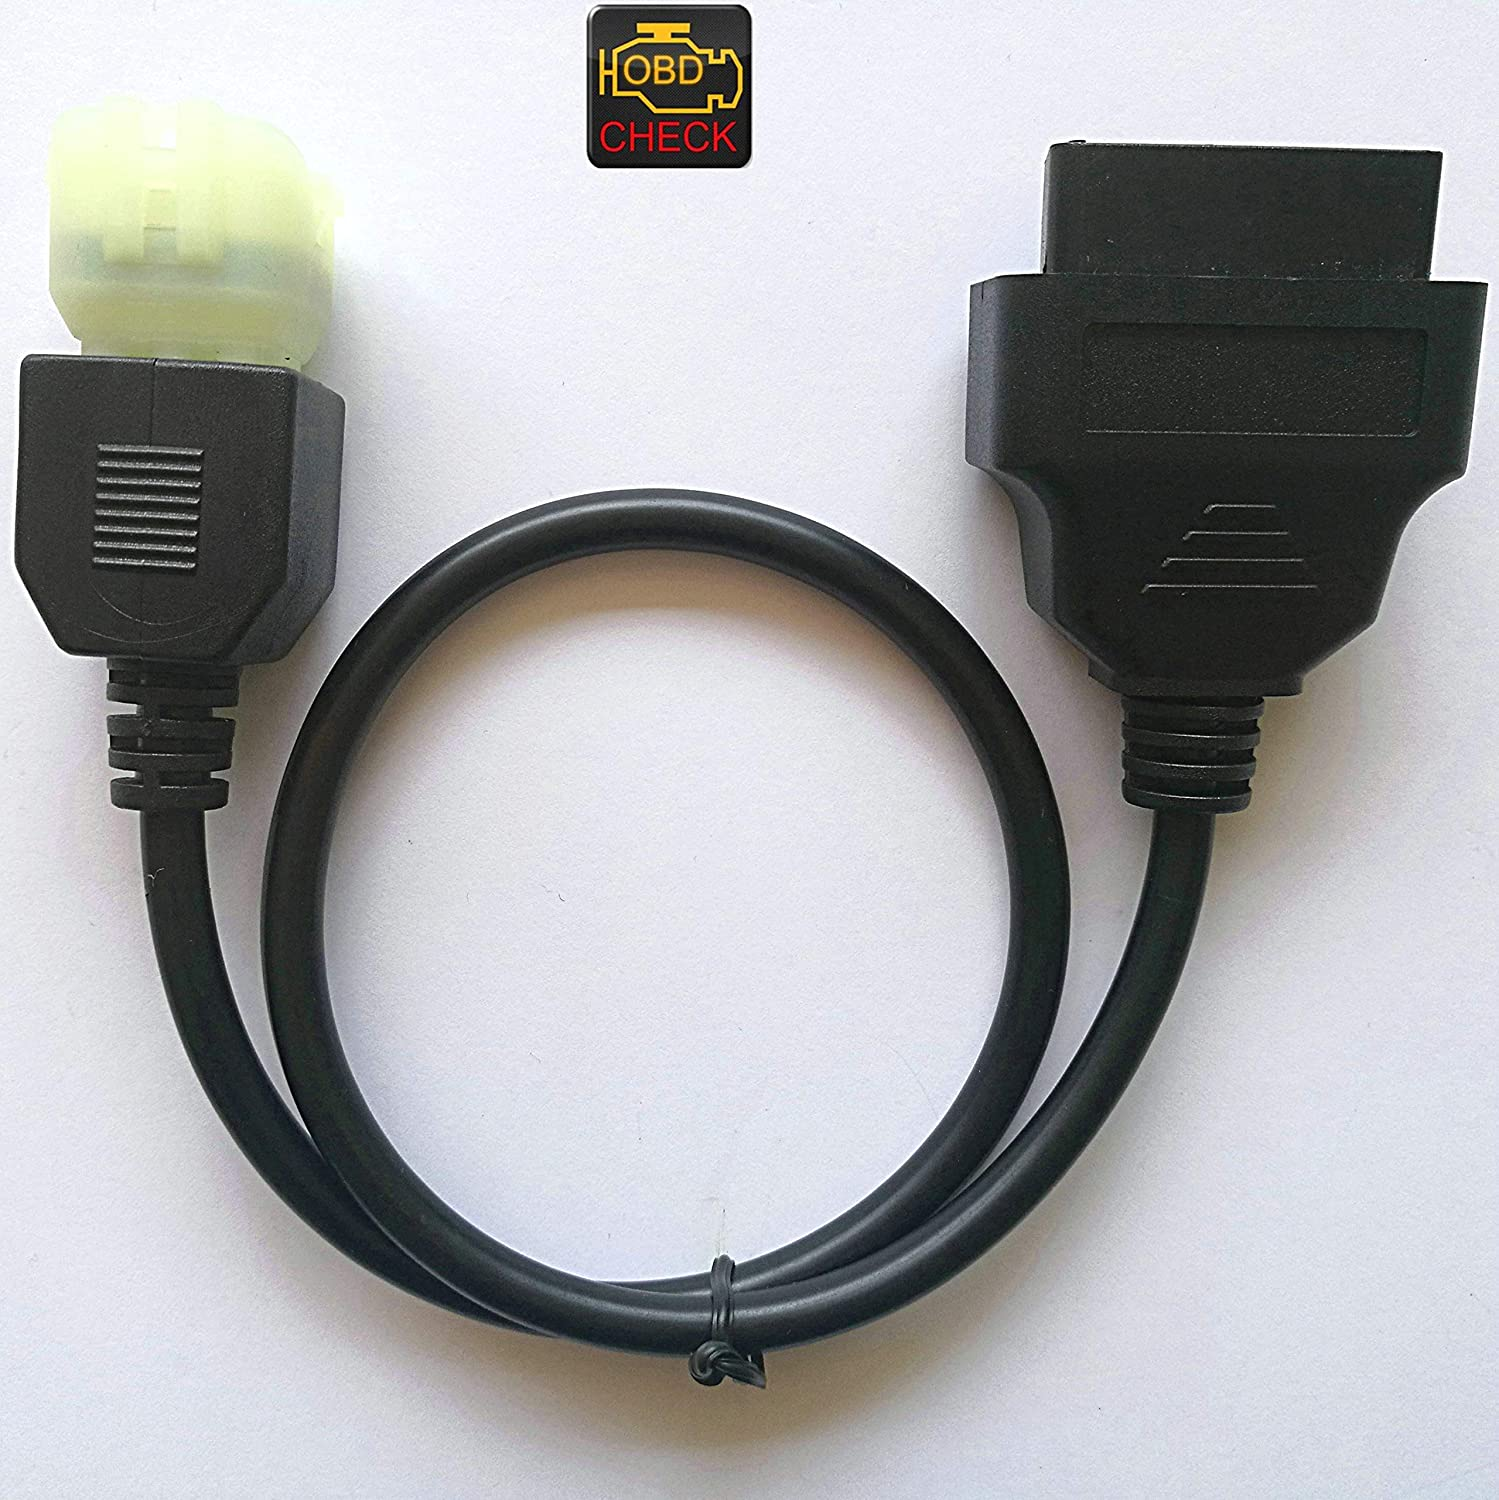 OTKEFDI Motorcycle 6 Pin OBD Diagnostic Cable for KTM Kline and Canbus Motorbike